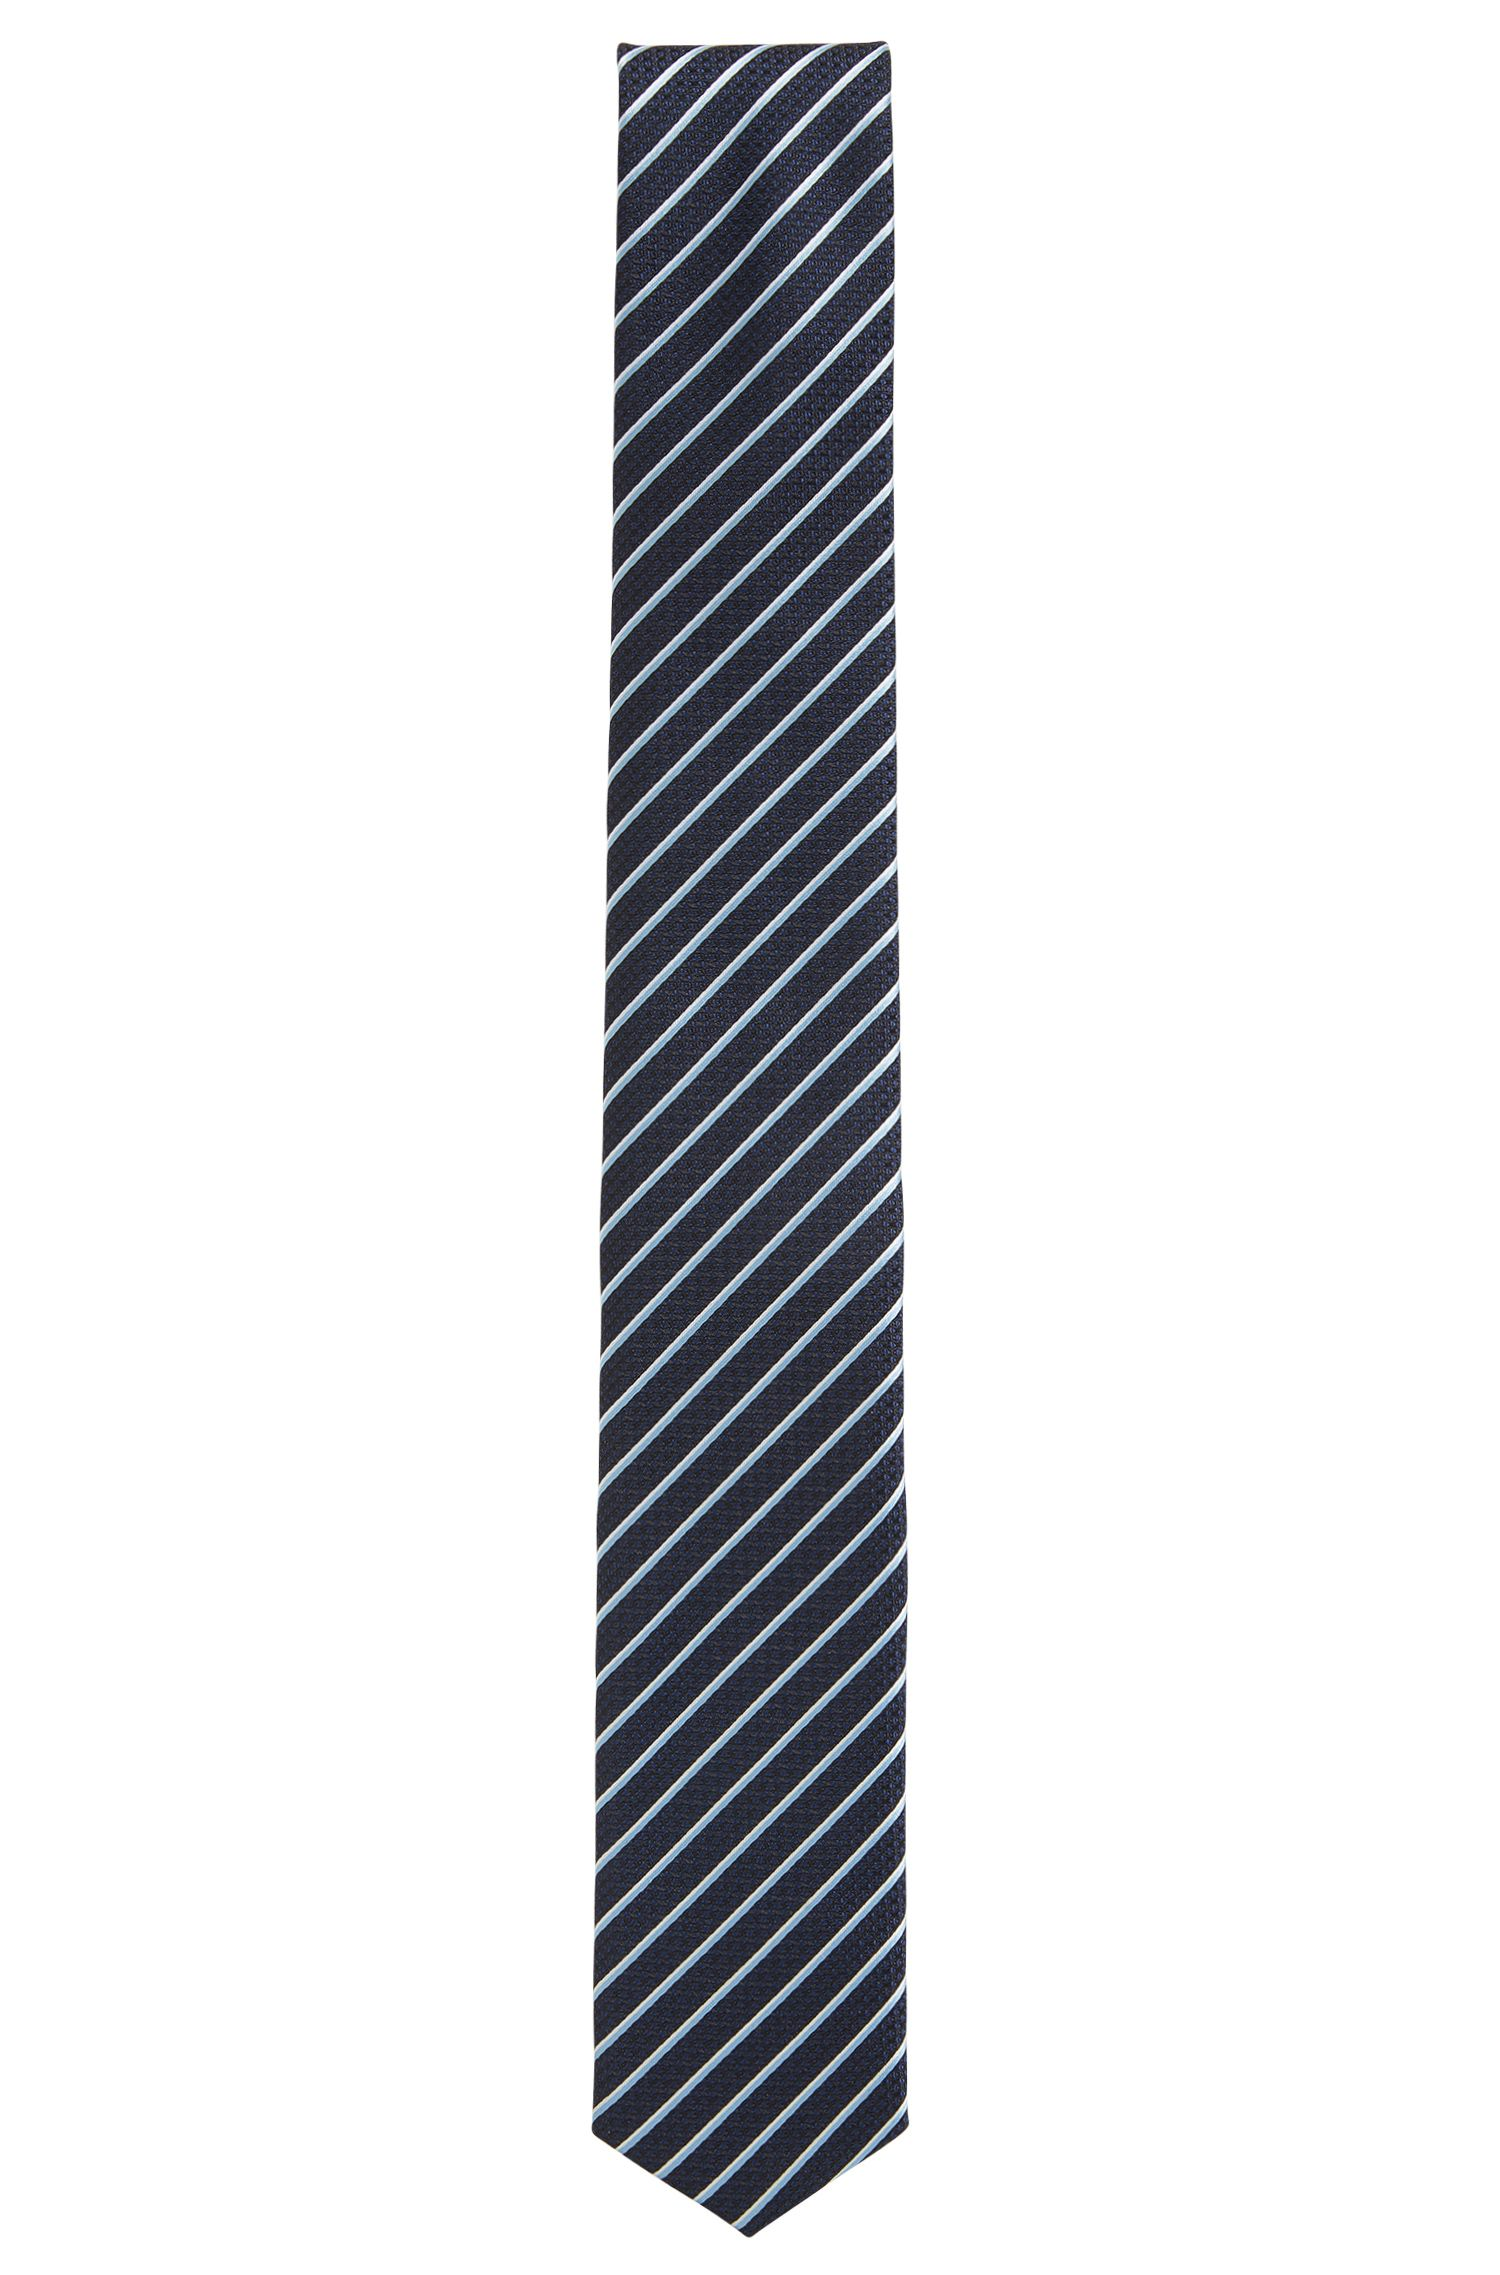 Travel Line striped silk tie with waterproof finish